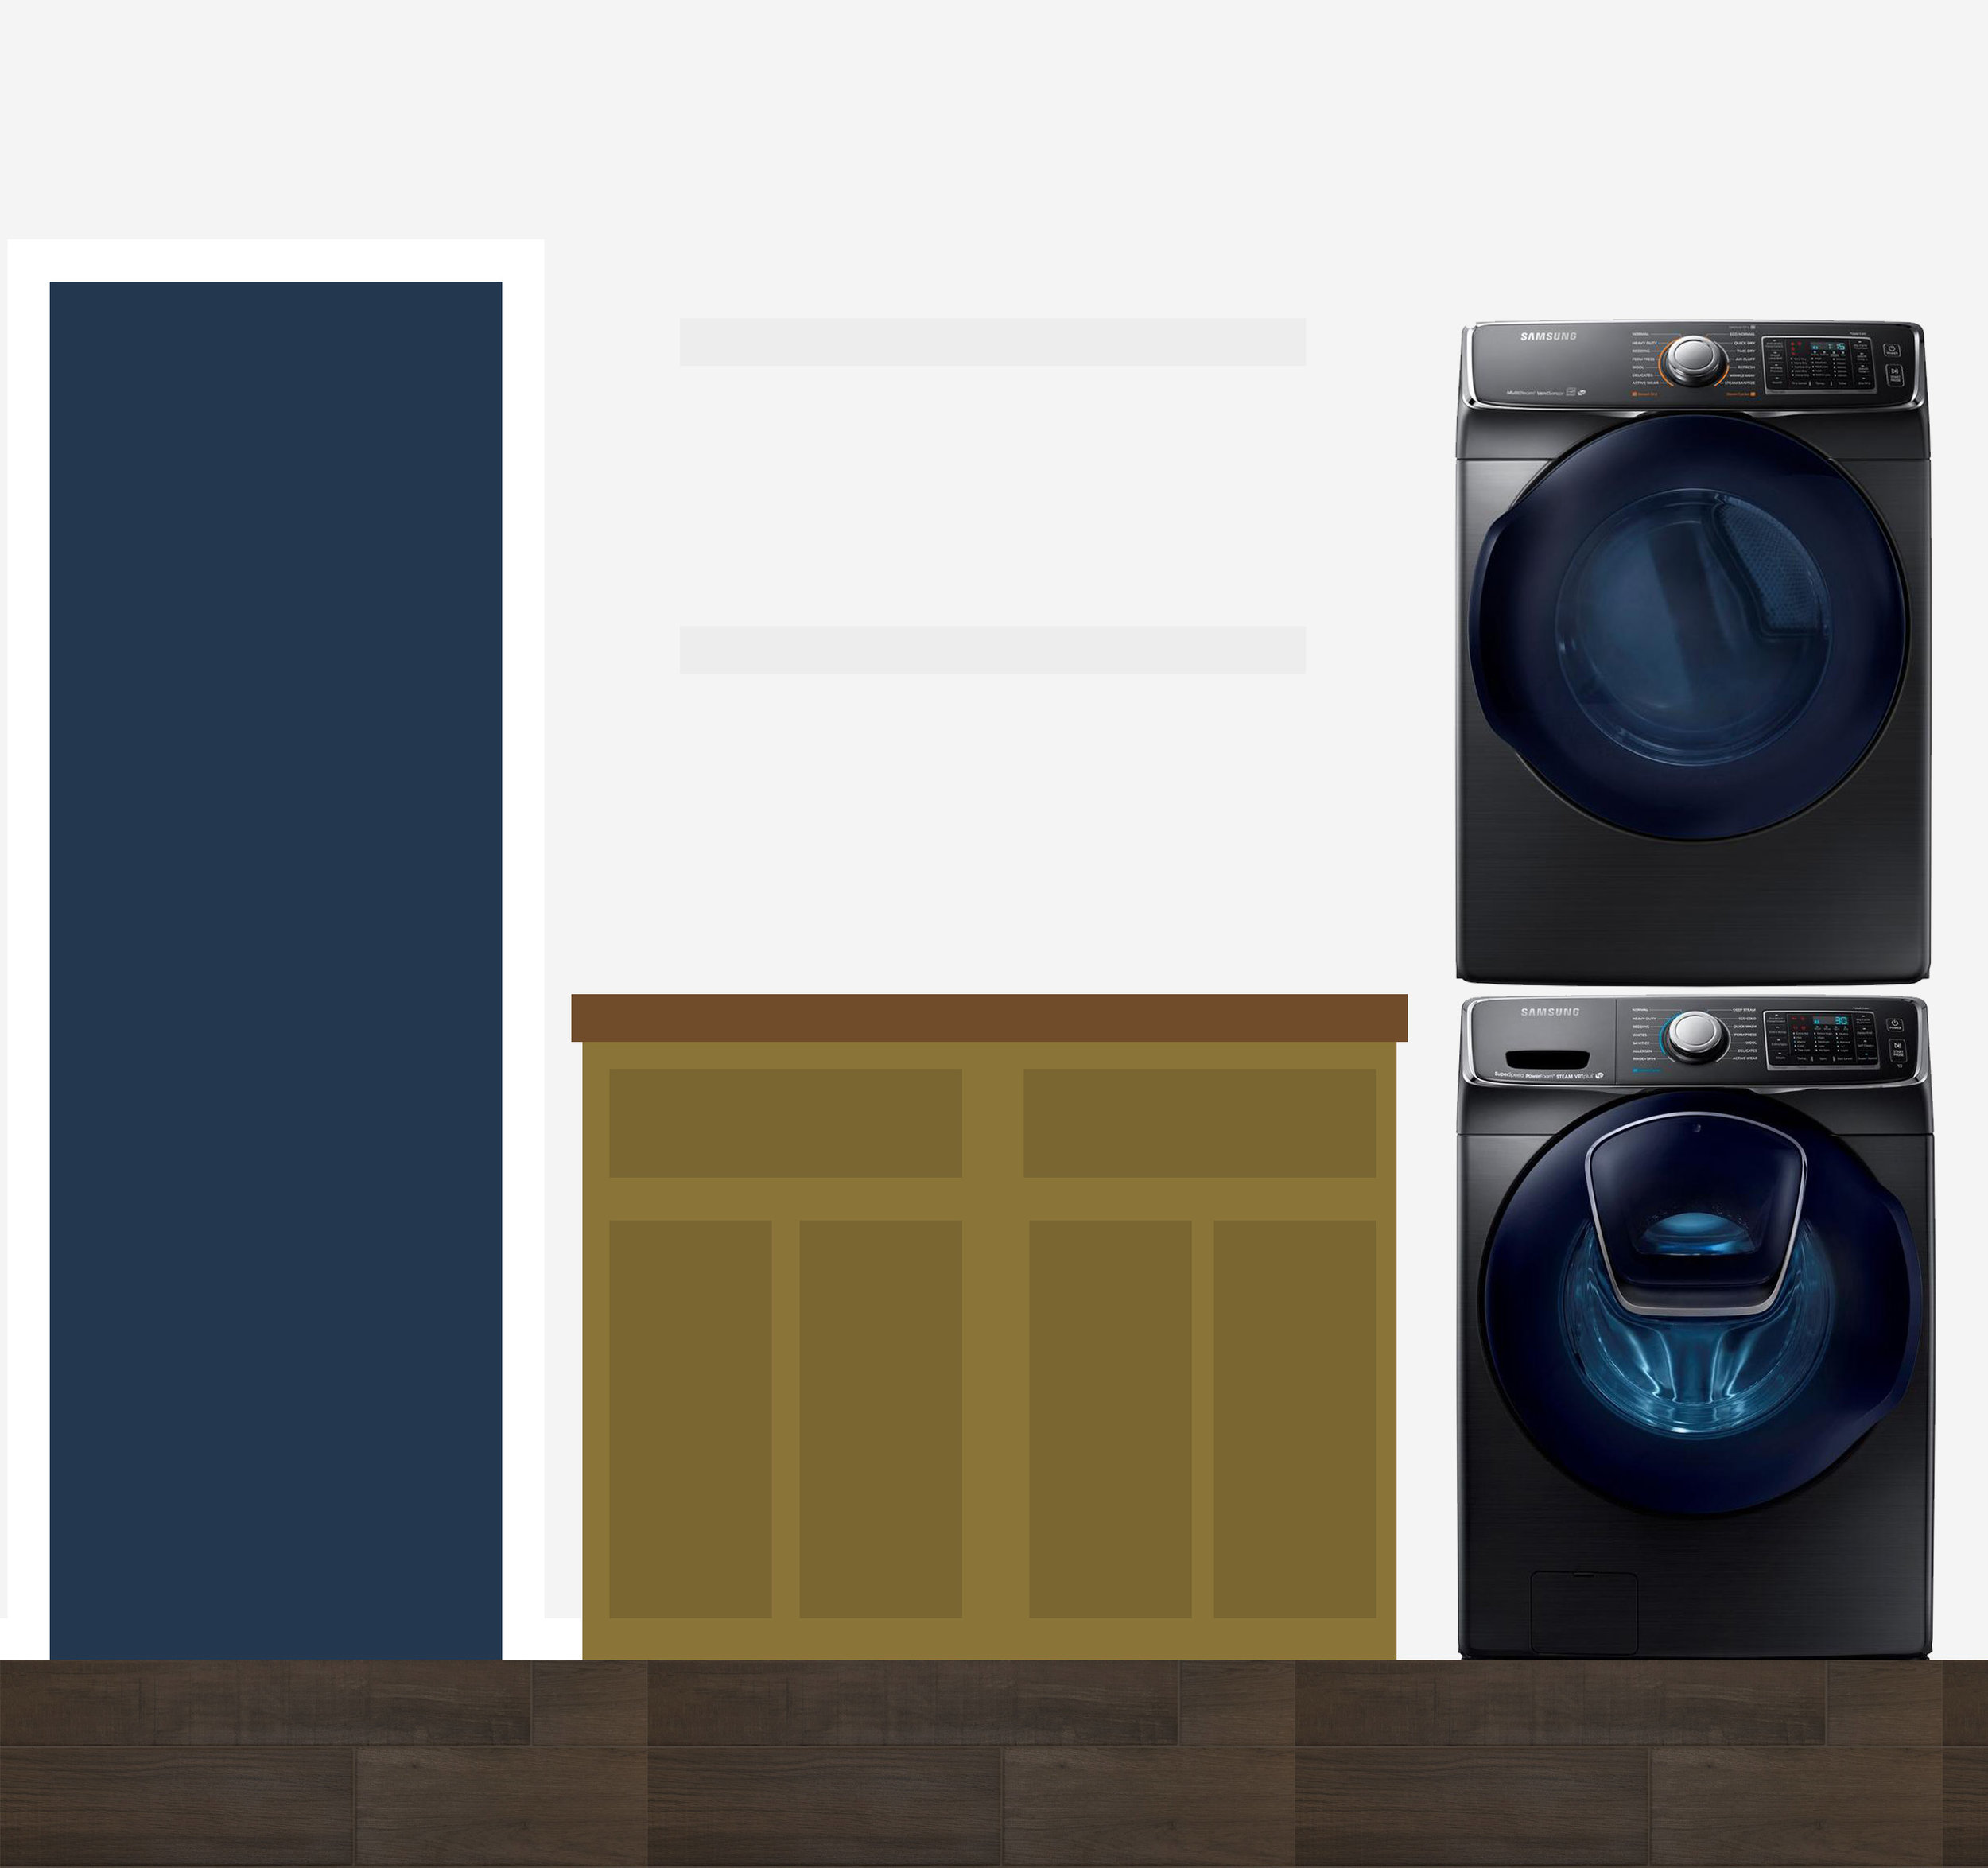 Laundry Room Design 6.jpg